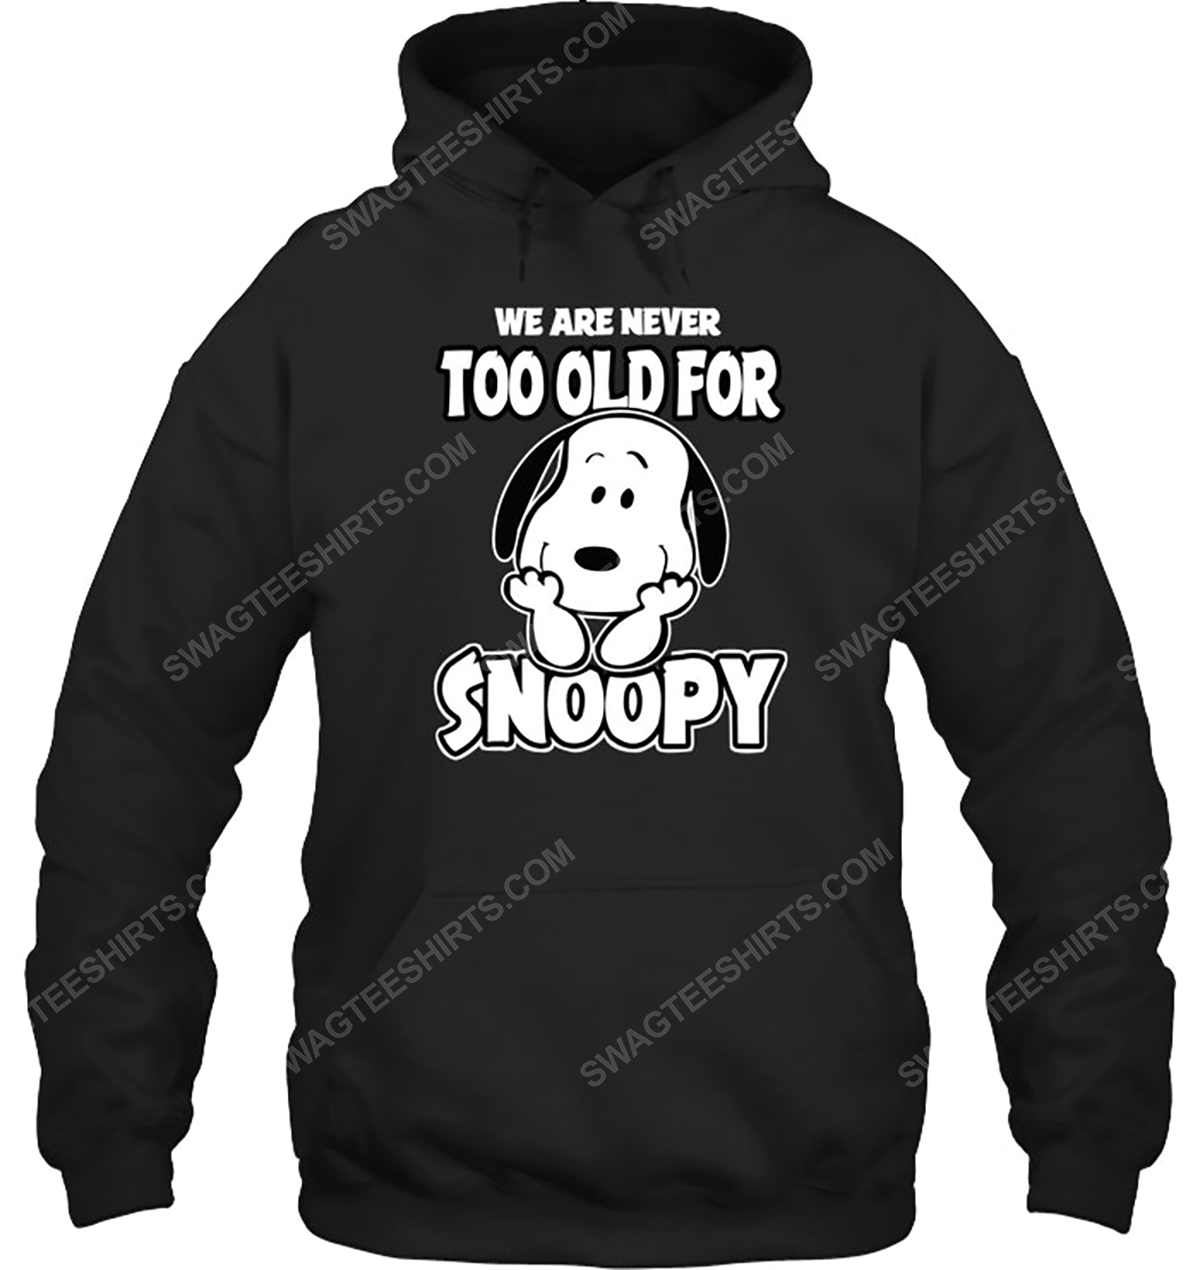 We are never too old for snoopy charlie brown hoodie 1